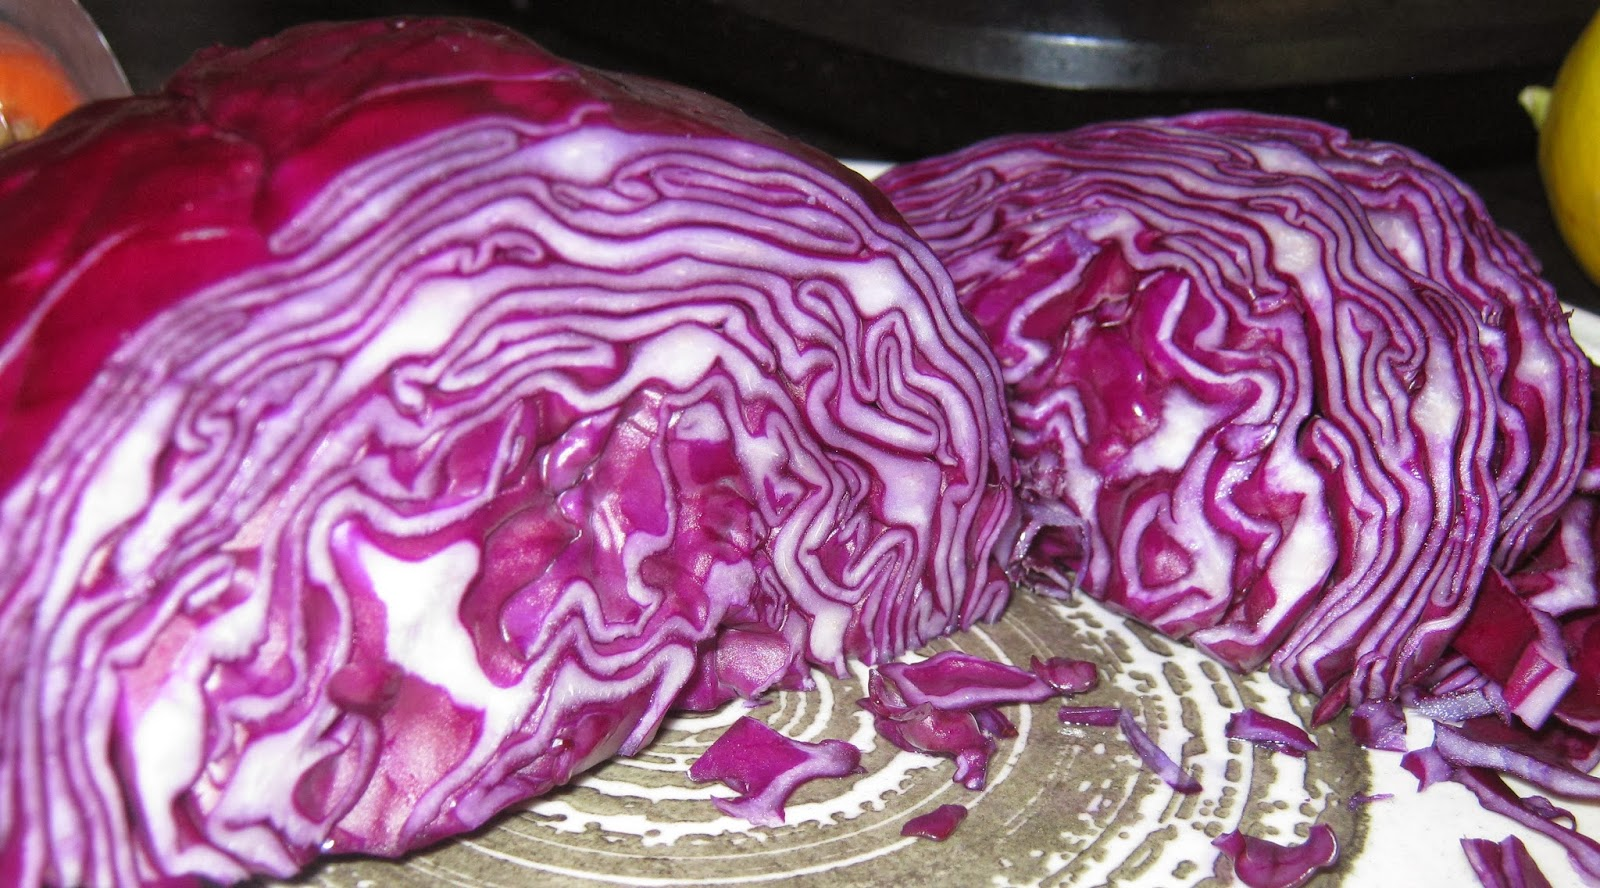 The pattern on the inside of a red cabbage